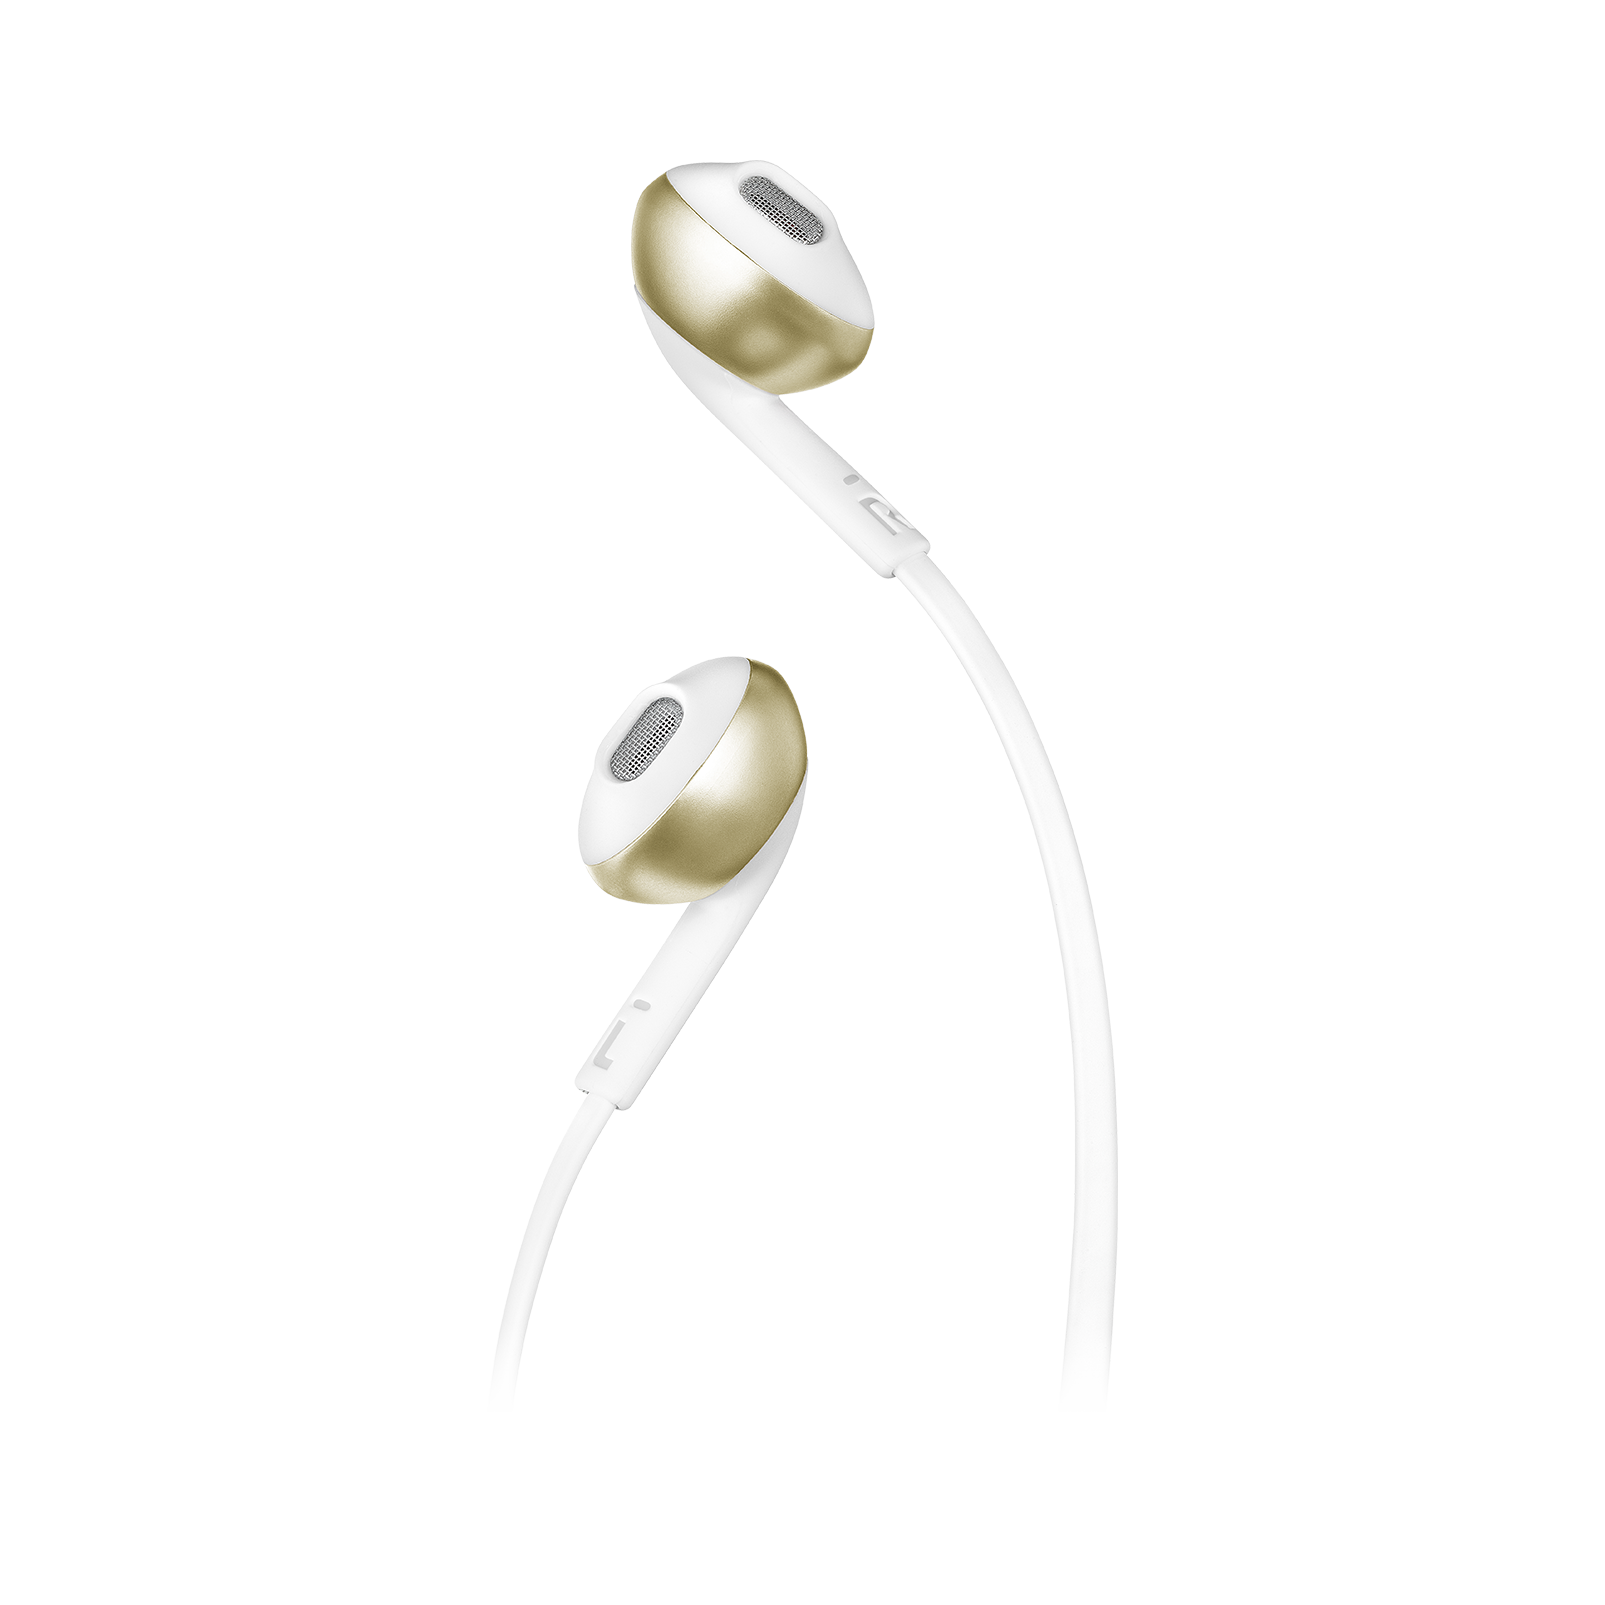 JBL TUNE 205BT - Champagne Gold - Wireless Earbud headphones - Detailshot 1